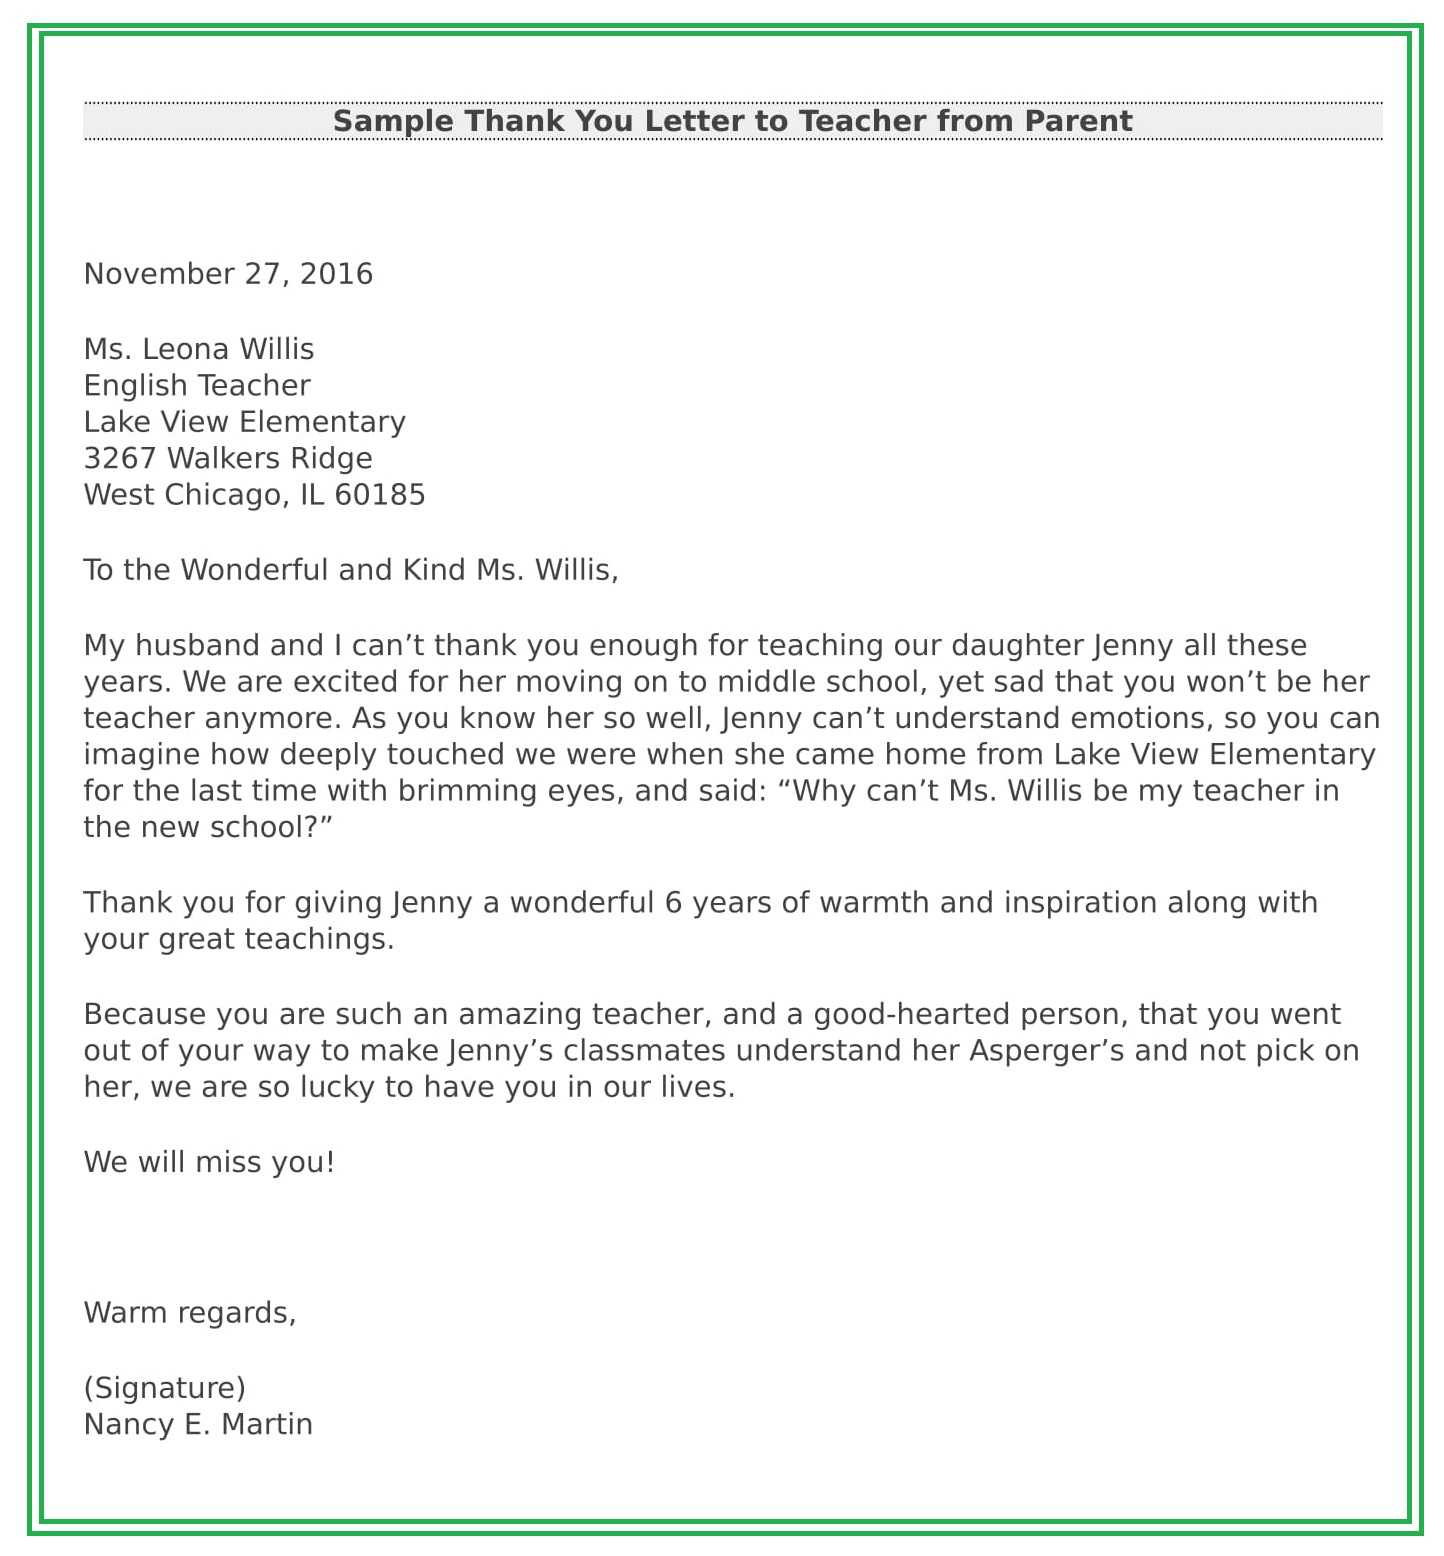 Thank you letter to teacher from parent